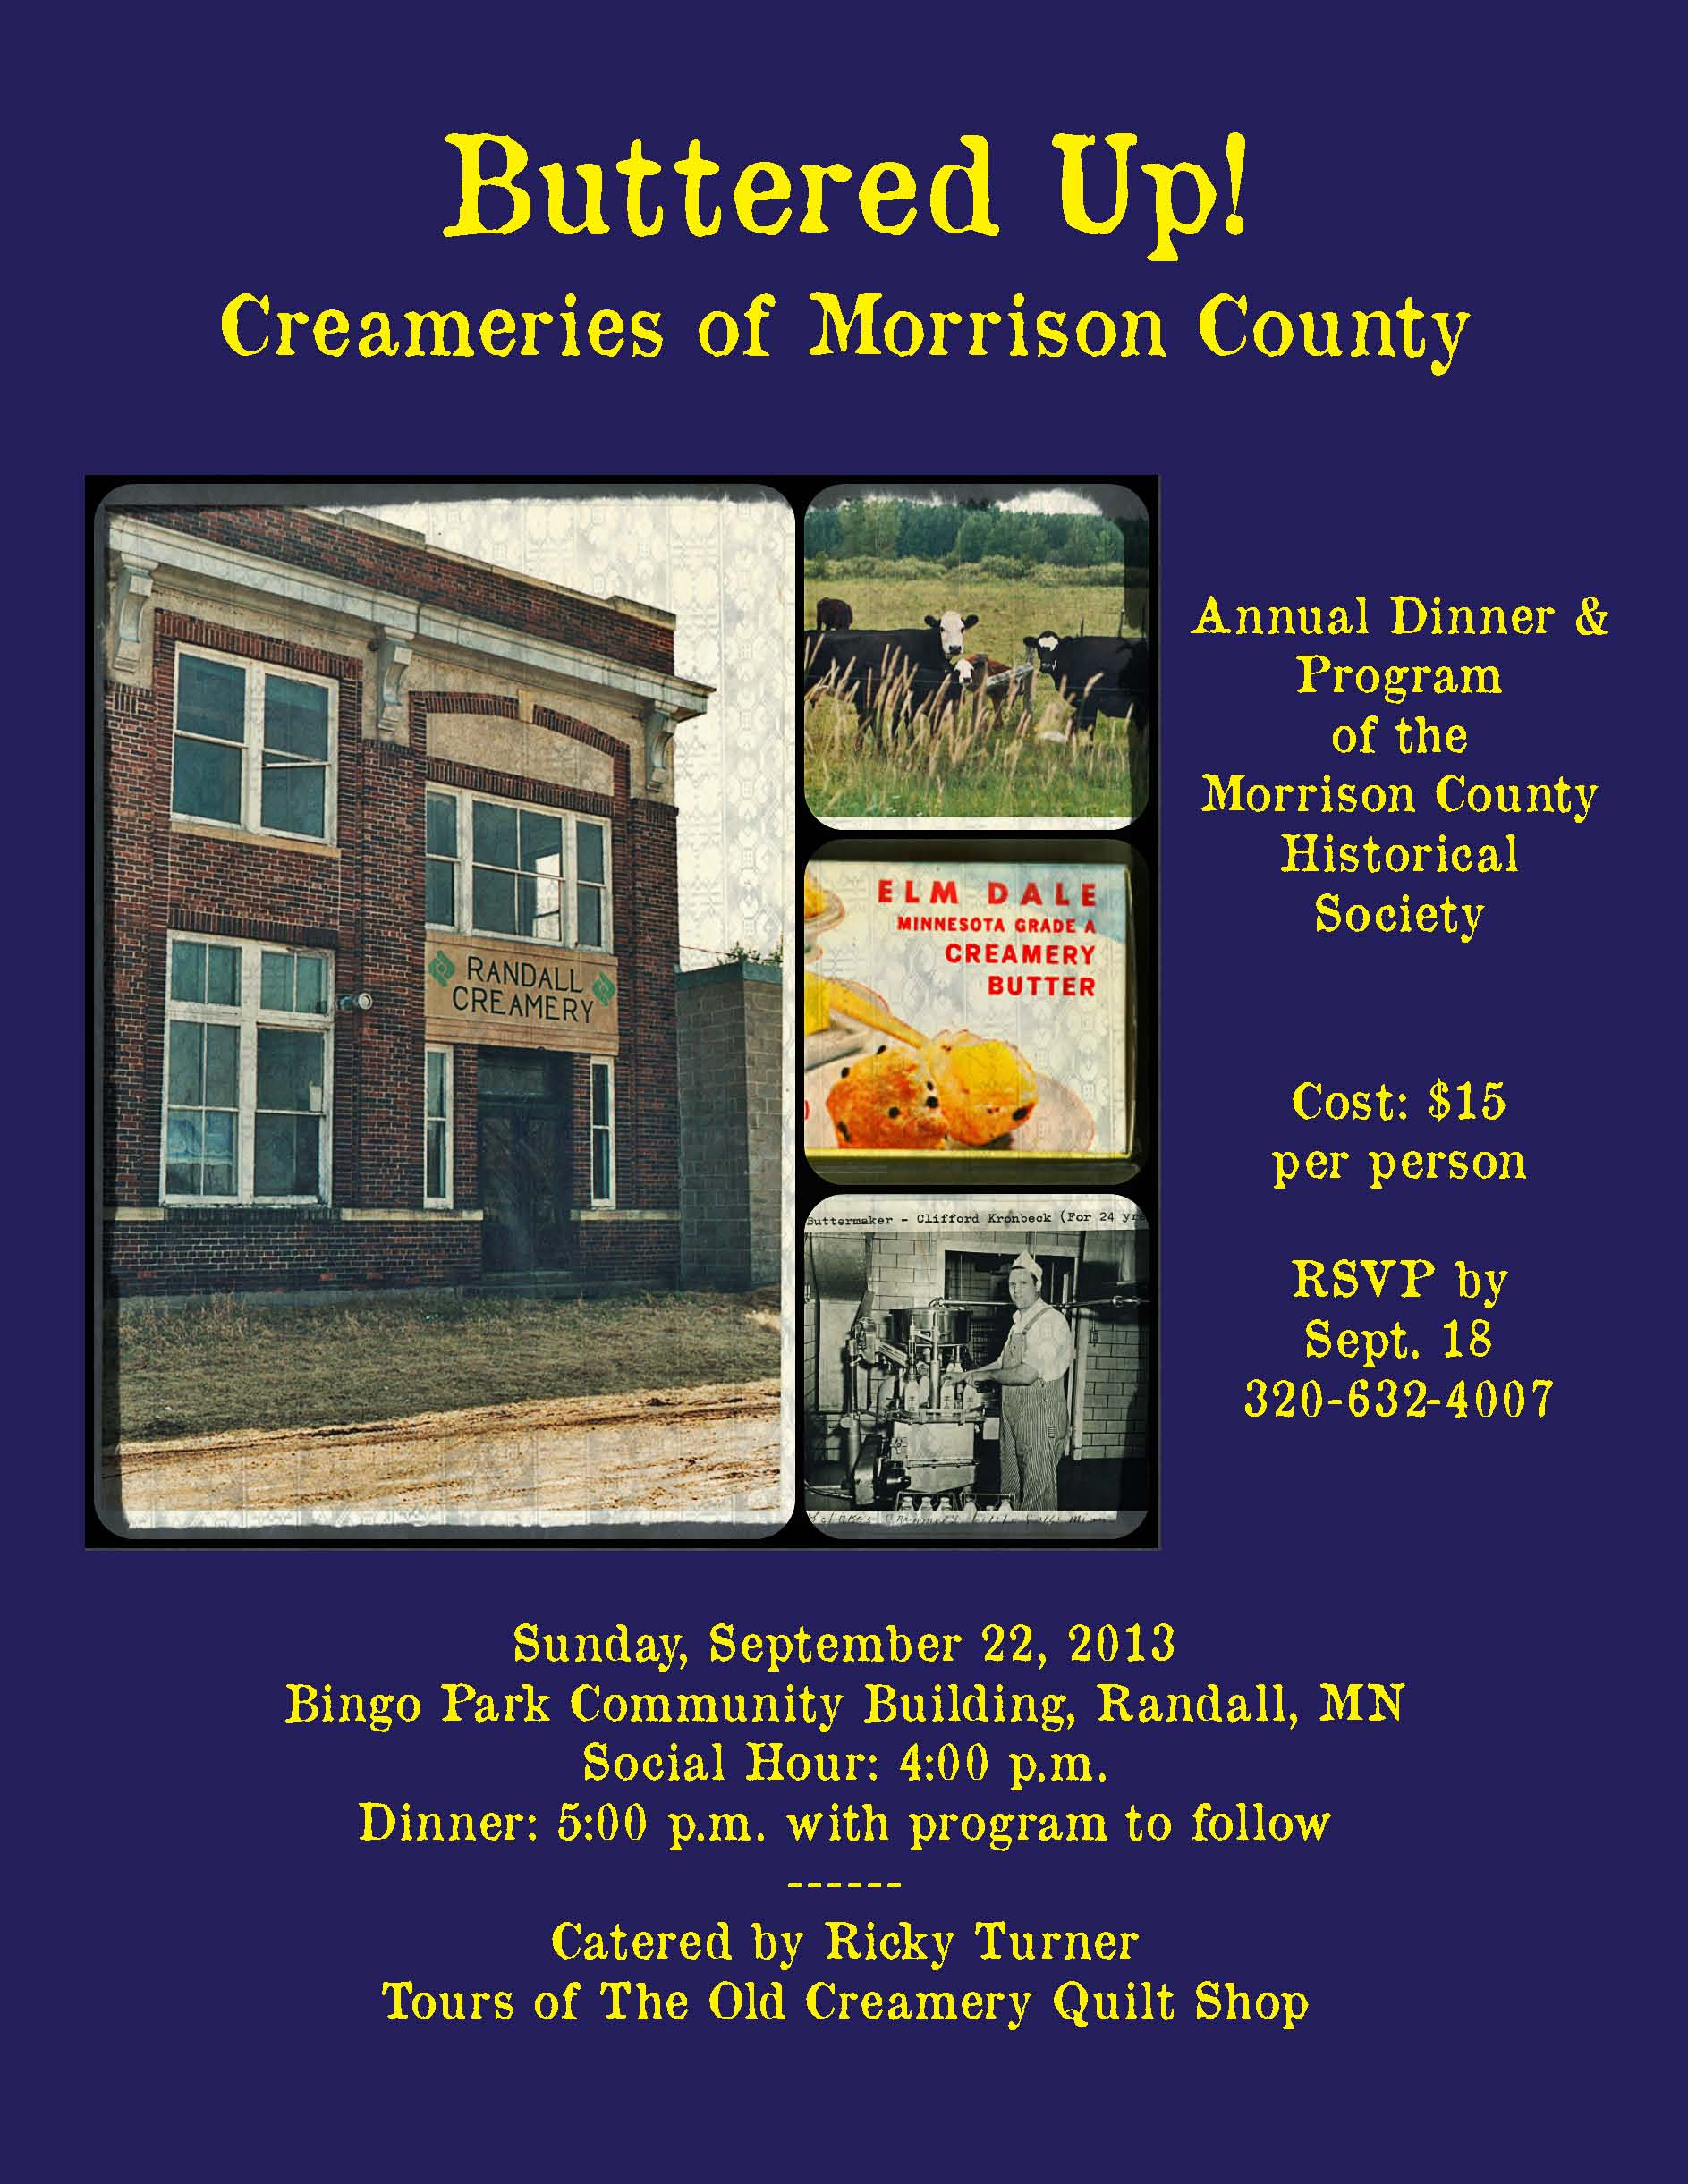 Buttered Up! Creameries of Morrison County - MCHS annual dinner notice.